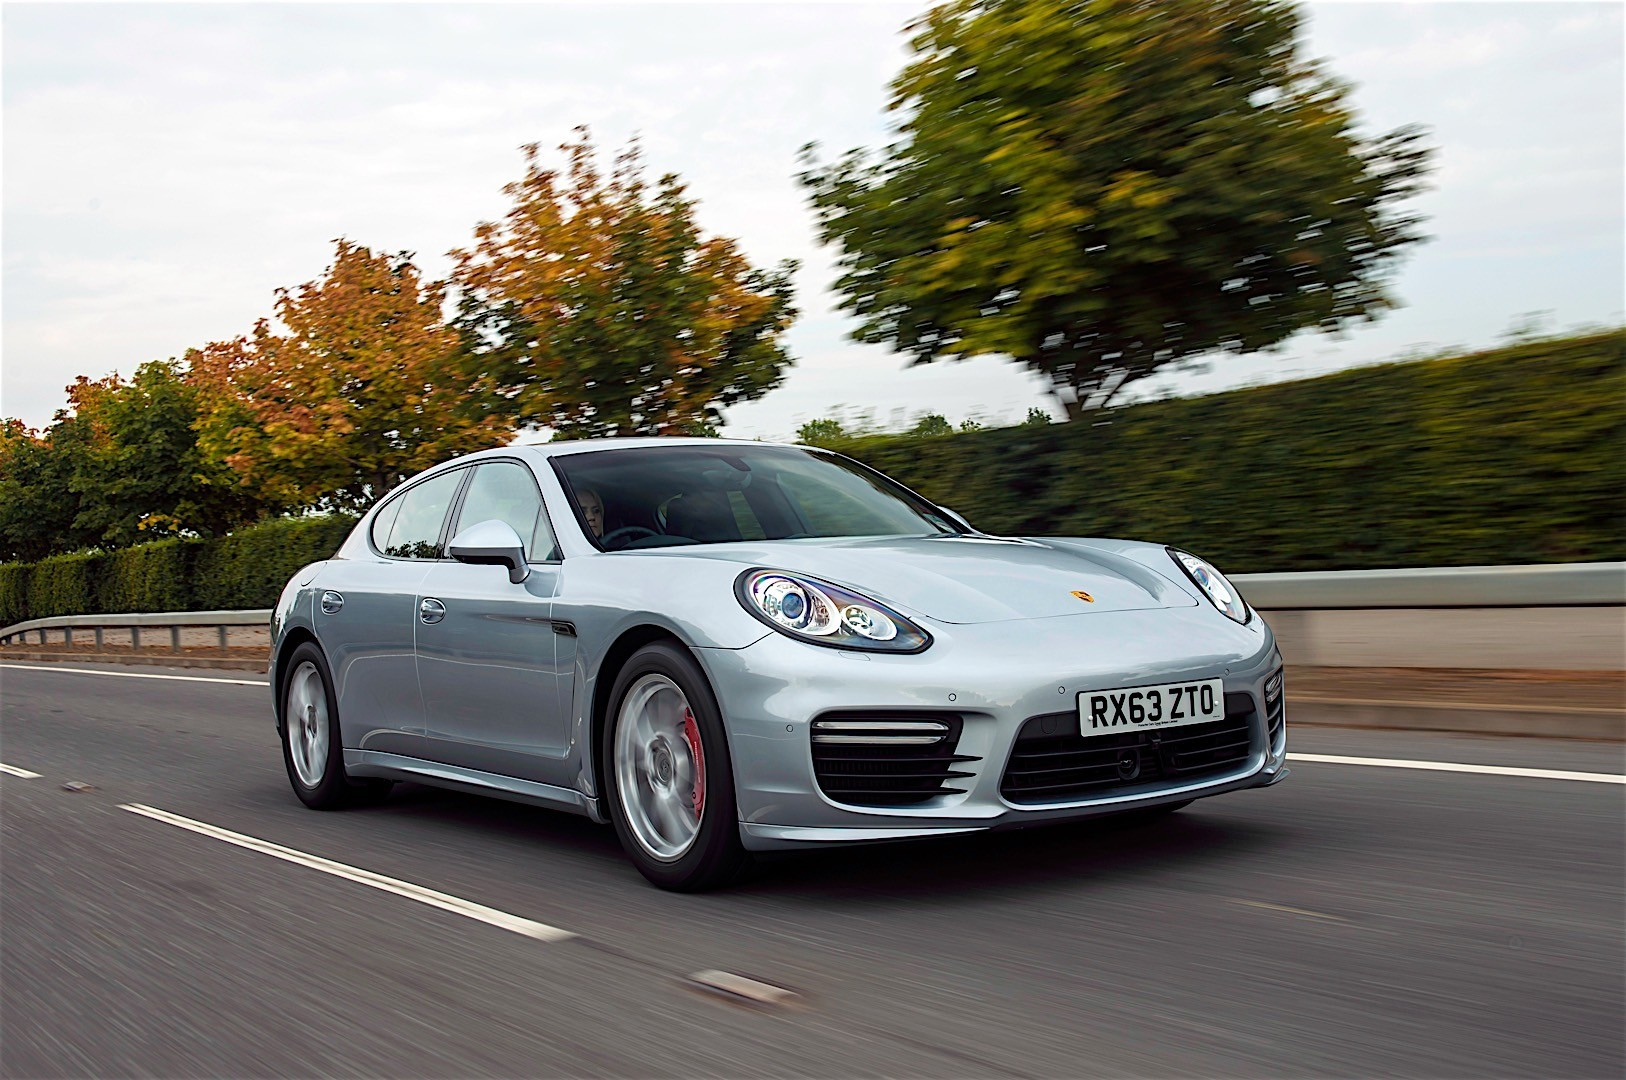 Porsche Panamera Turbo 2013 photo - 10